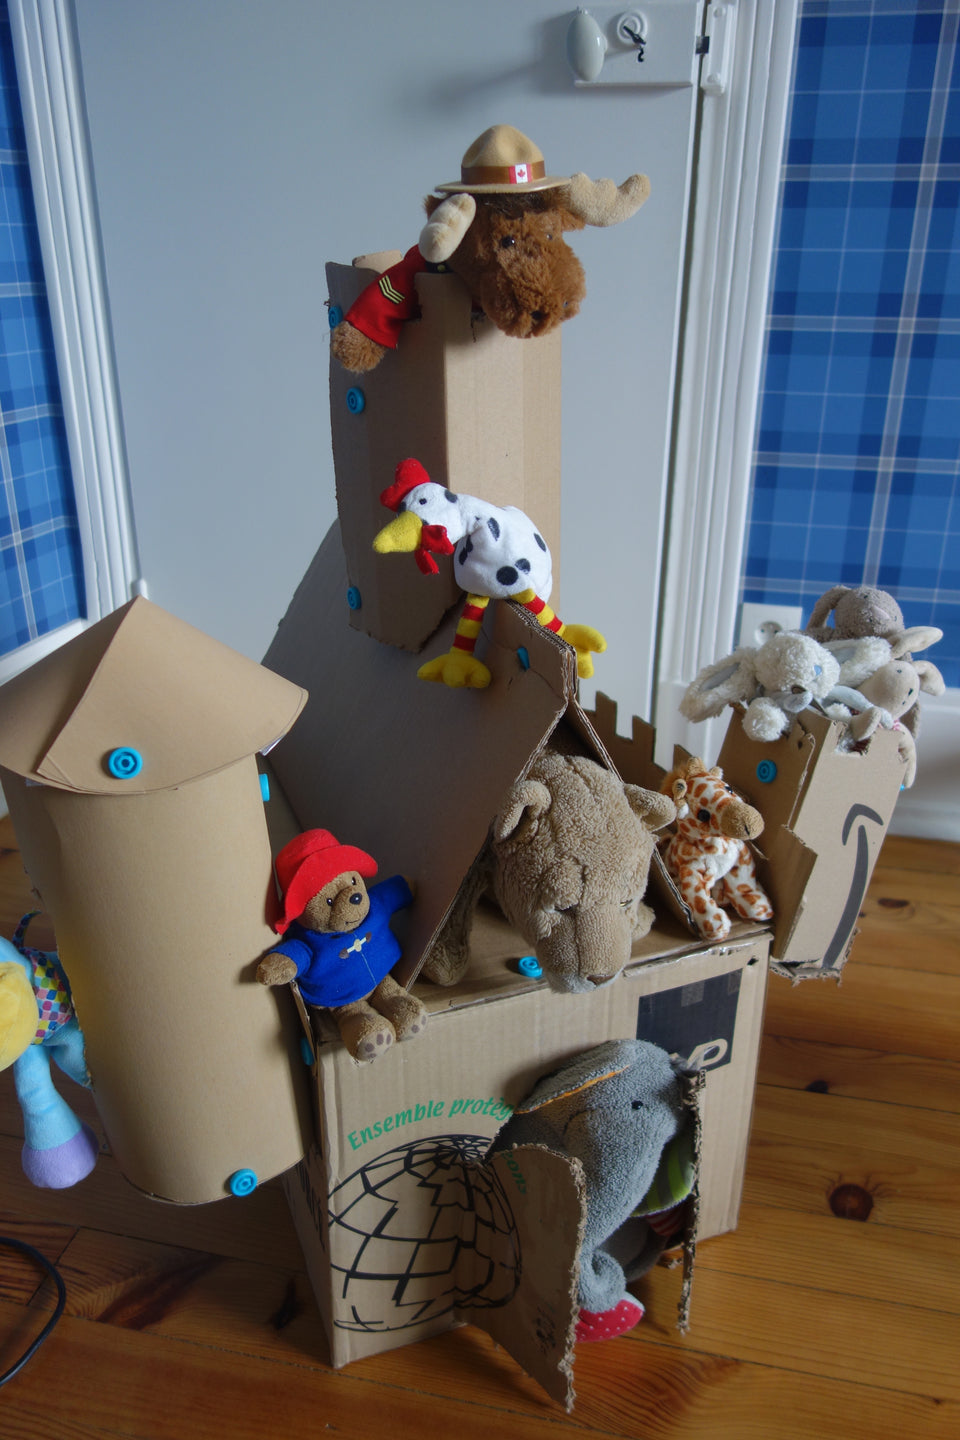 Castle for soft toys made with Makedo cardboard construction tools